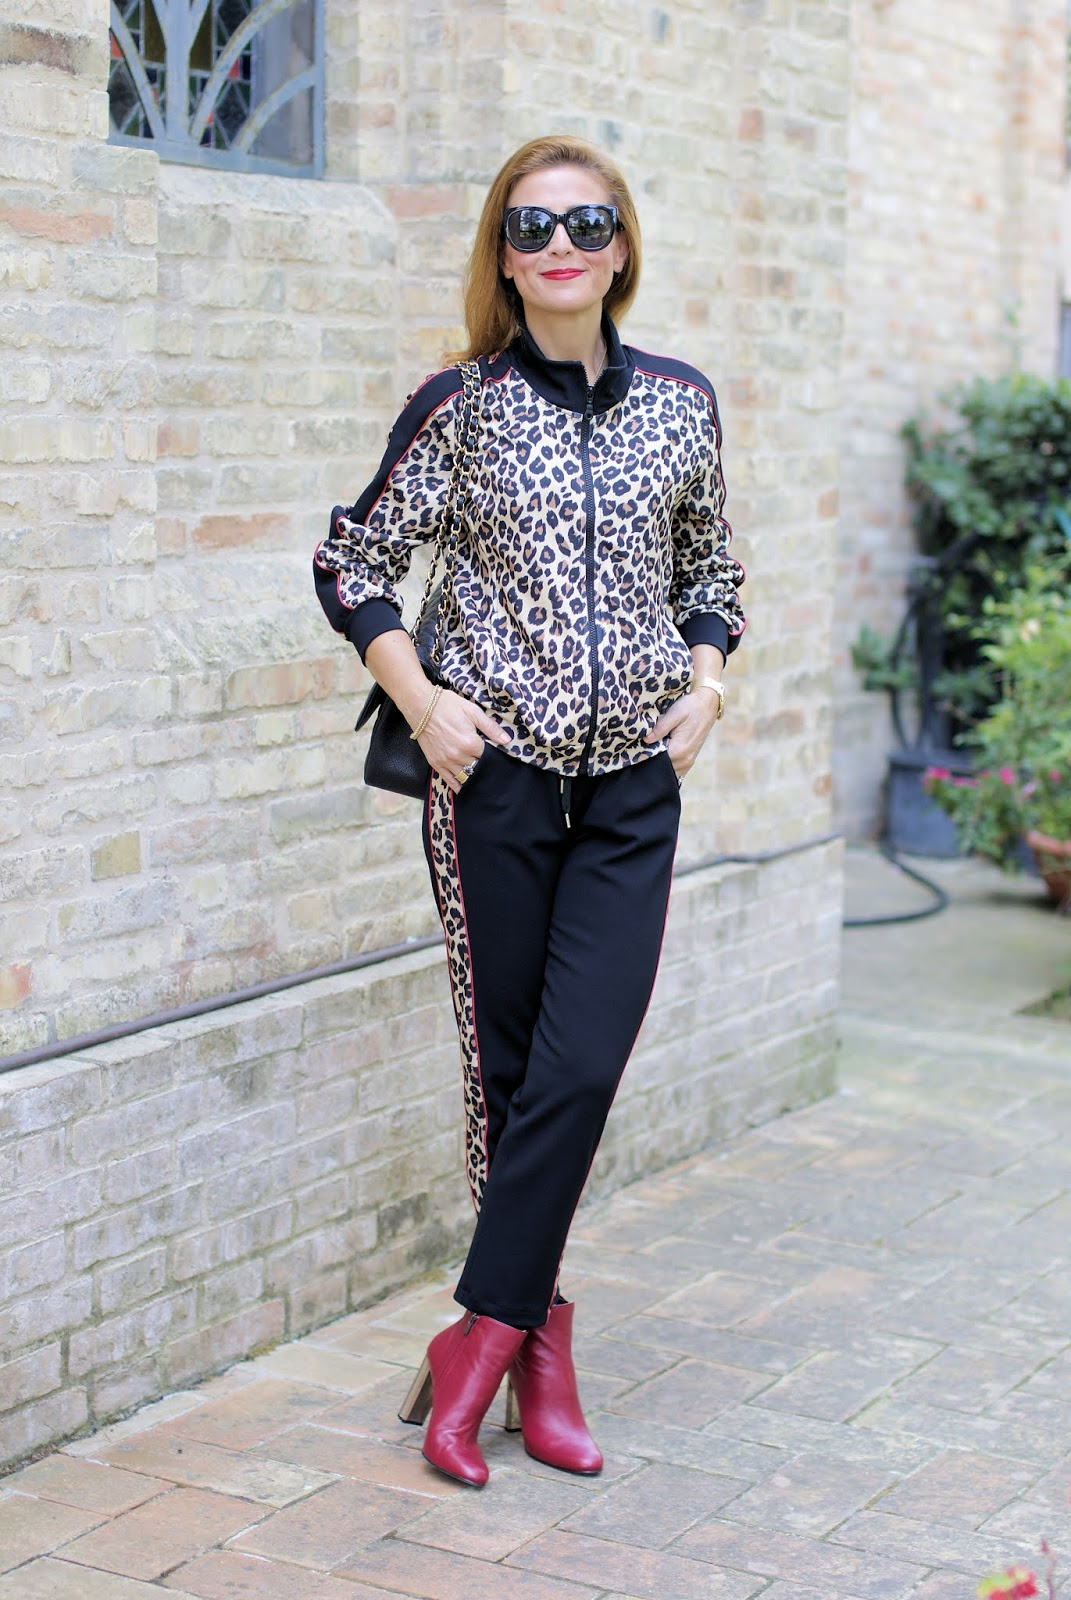 The animal print trend: leopard print tracksuit and Le Silla Rachel ankle boots on Fashion and Cookies fashion blog, fashion blogger style